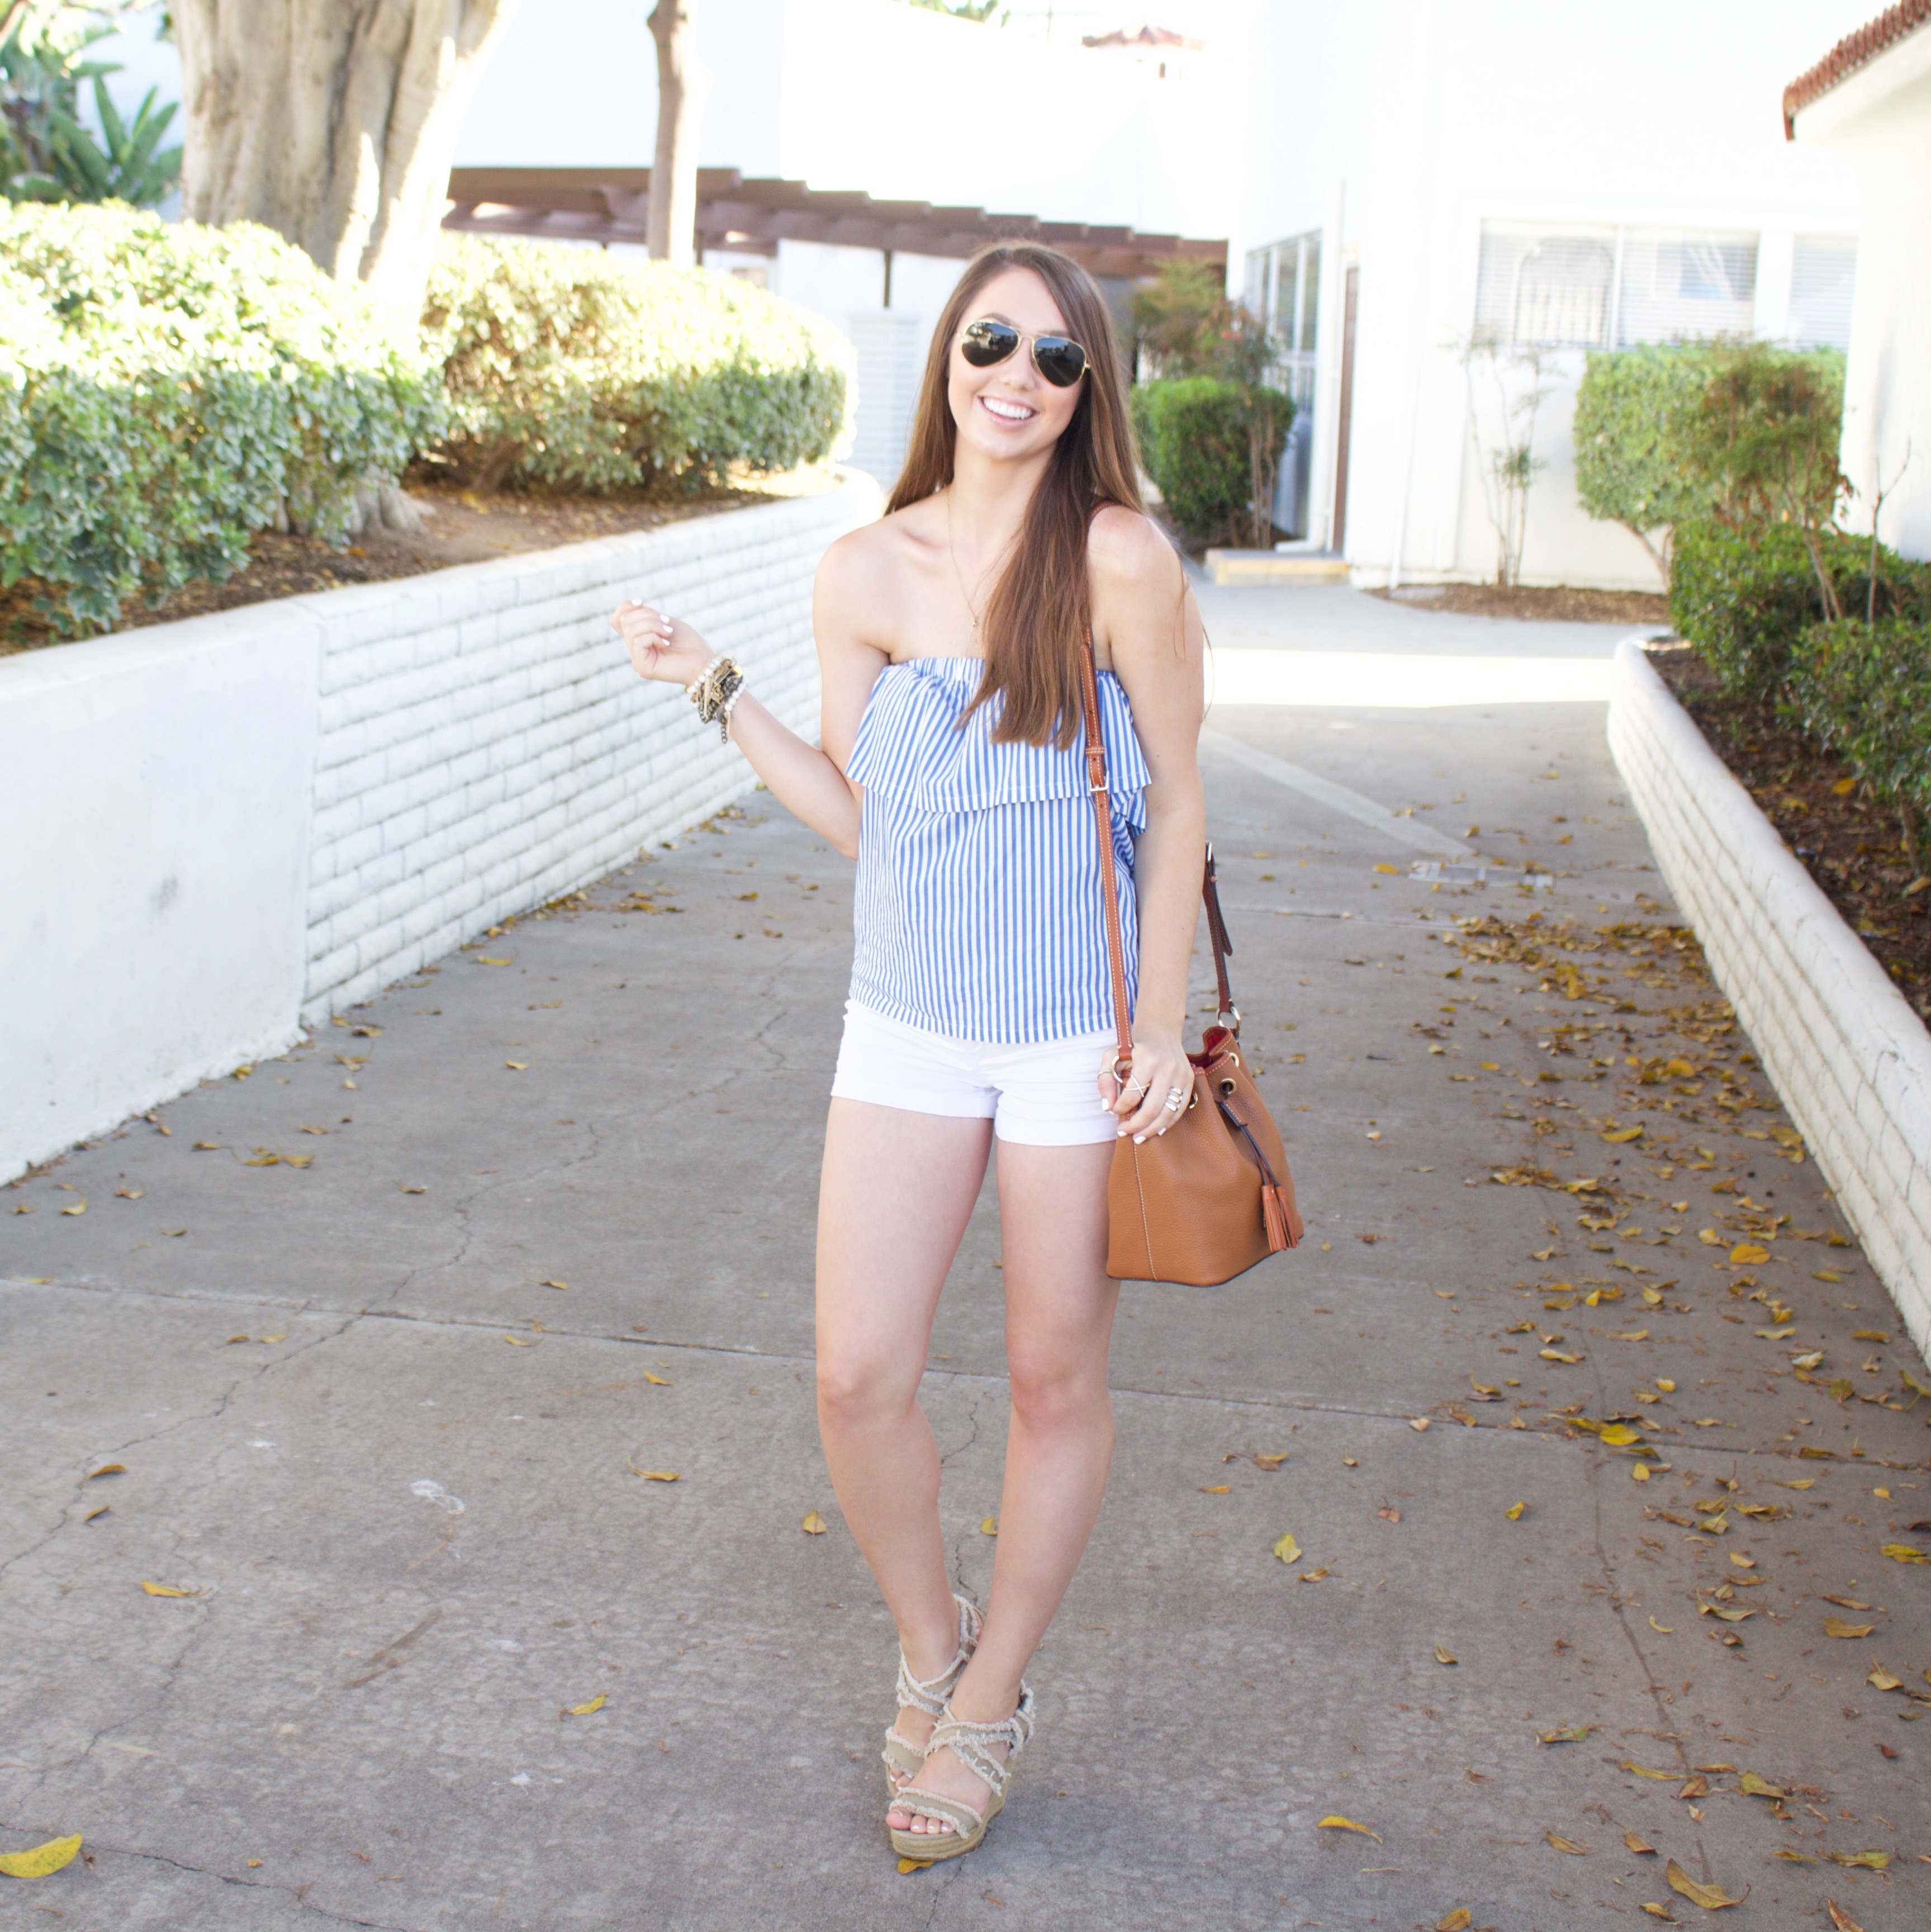 Blue and White Striped Strapless Top - My Styled Life